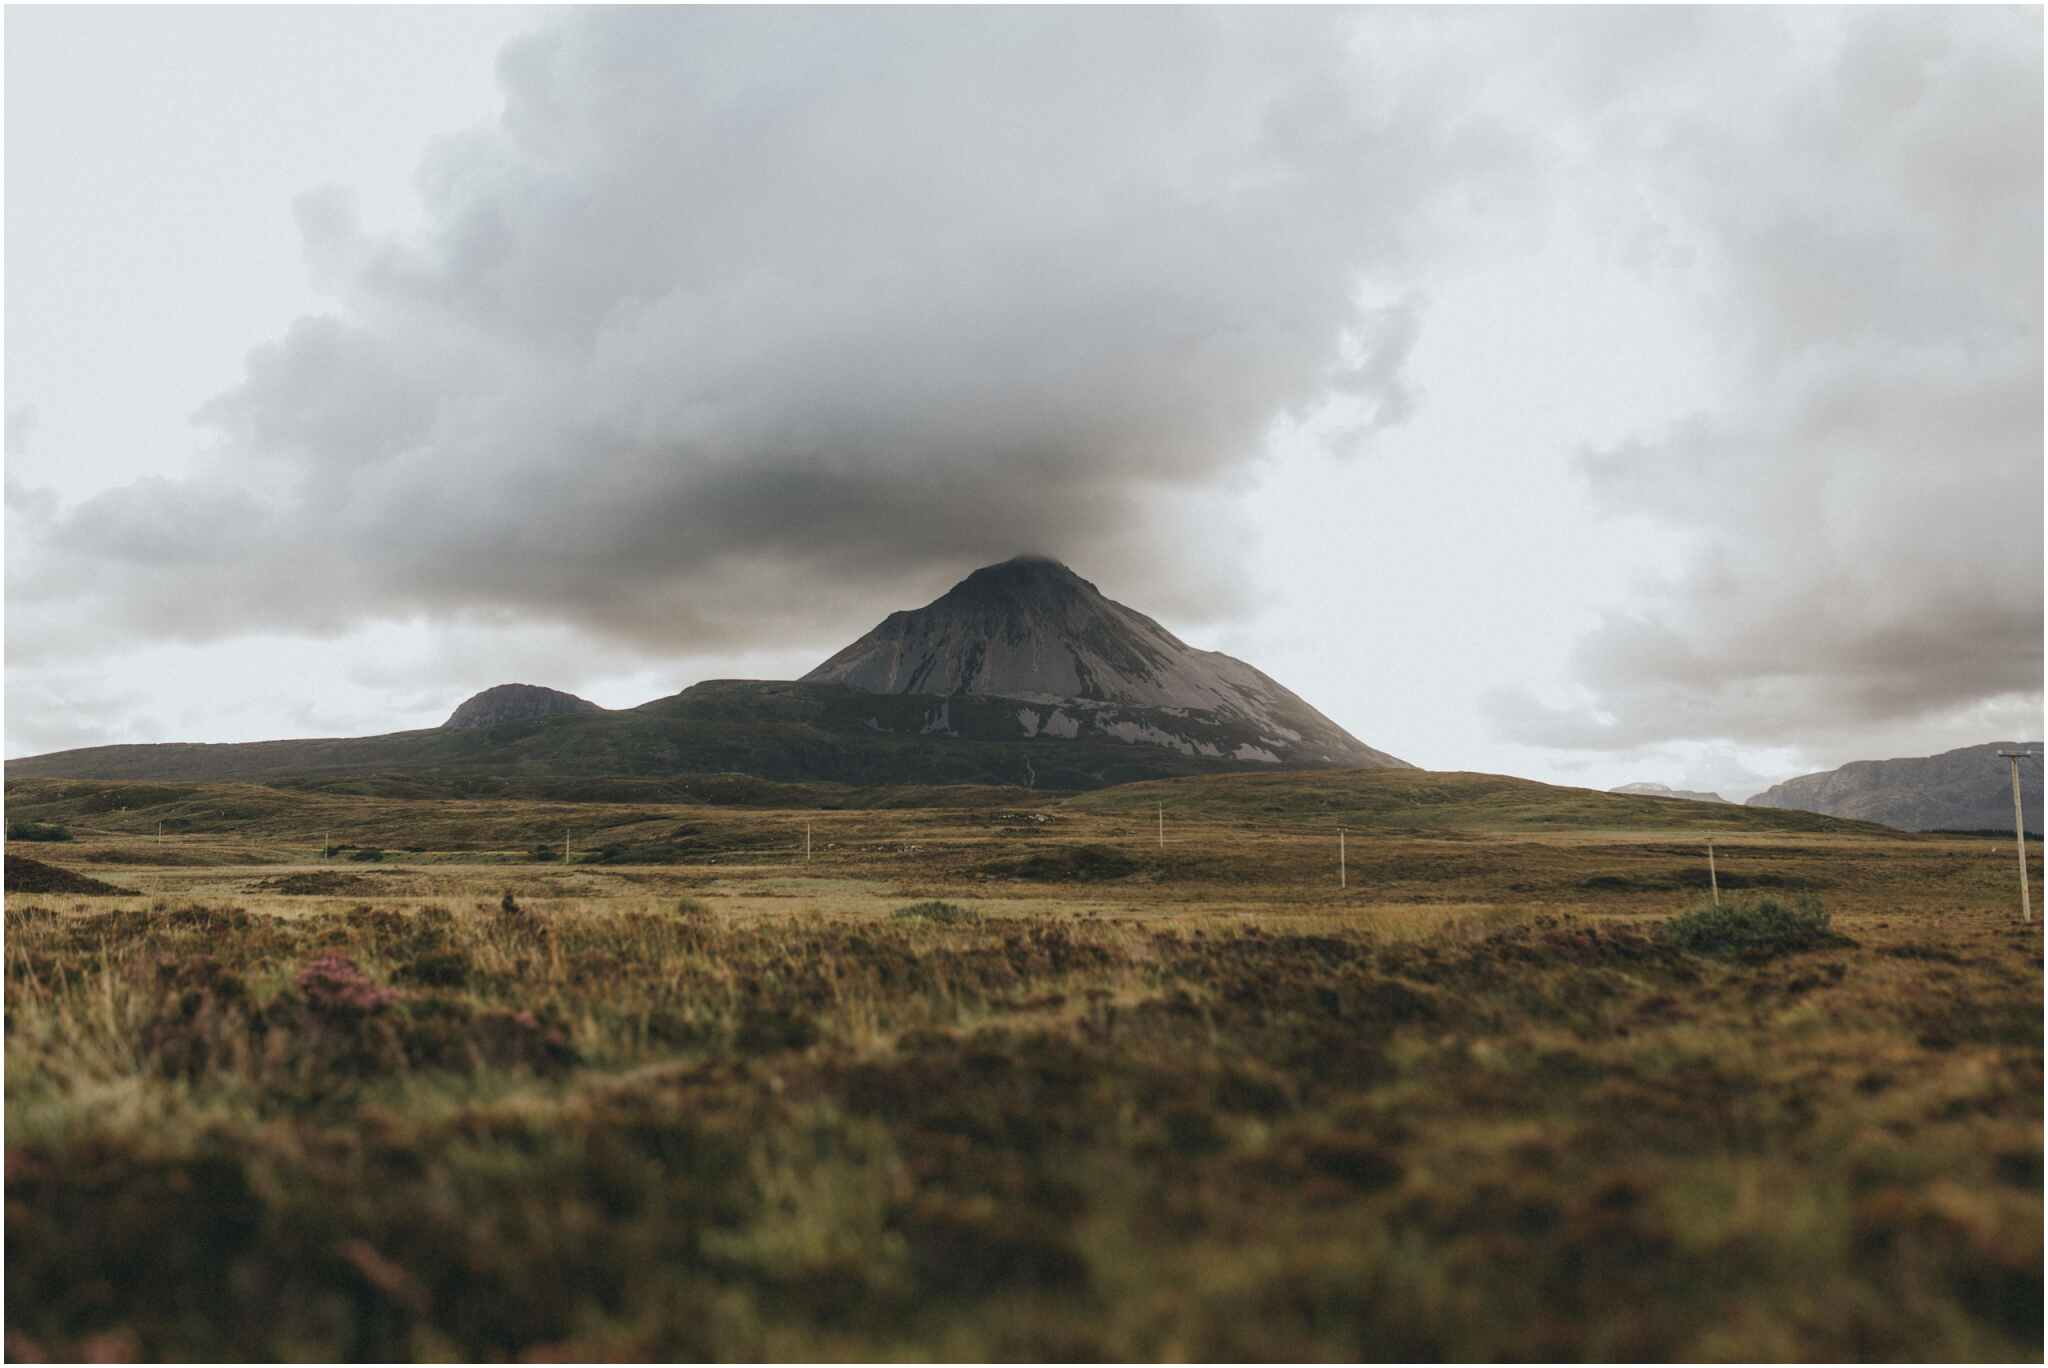 Rachel + David - Hiking Elopement in Muckish Mountain and Poisoned Glen, Donegal 18